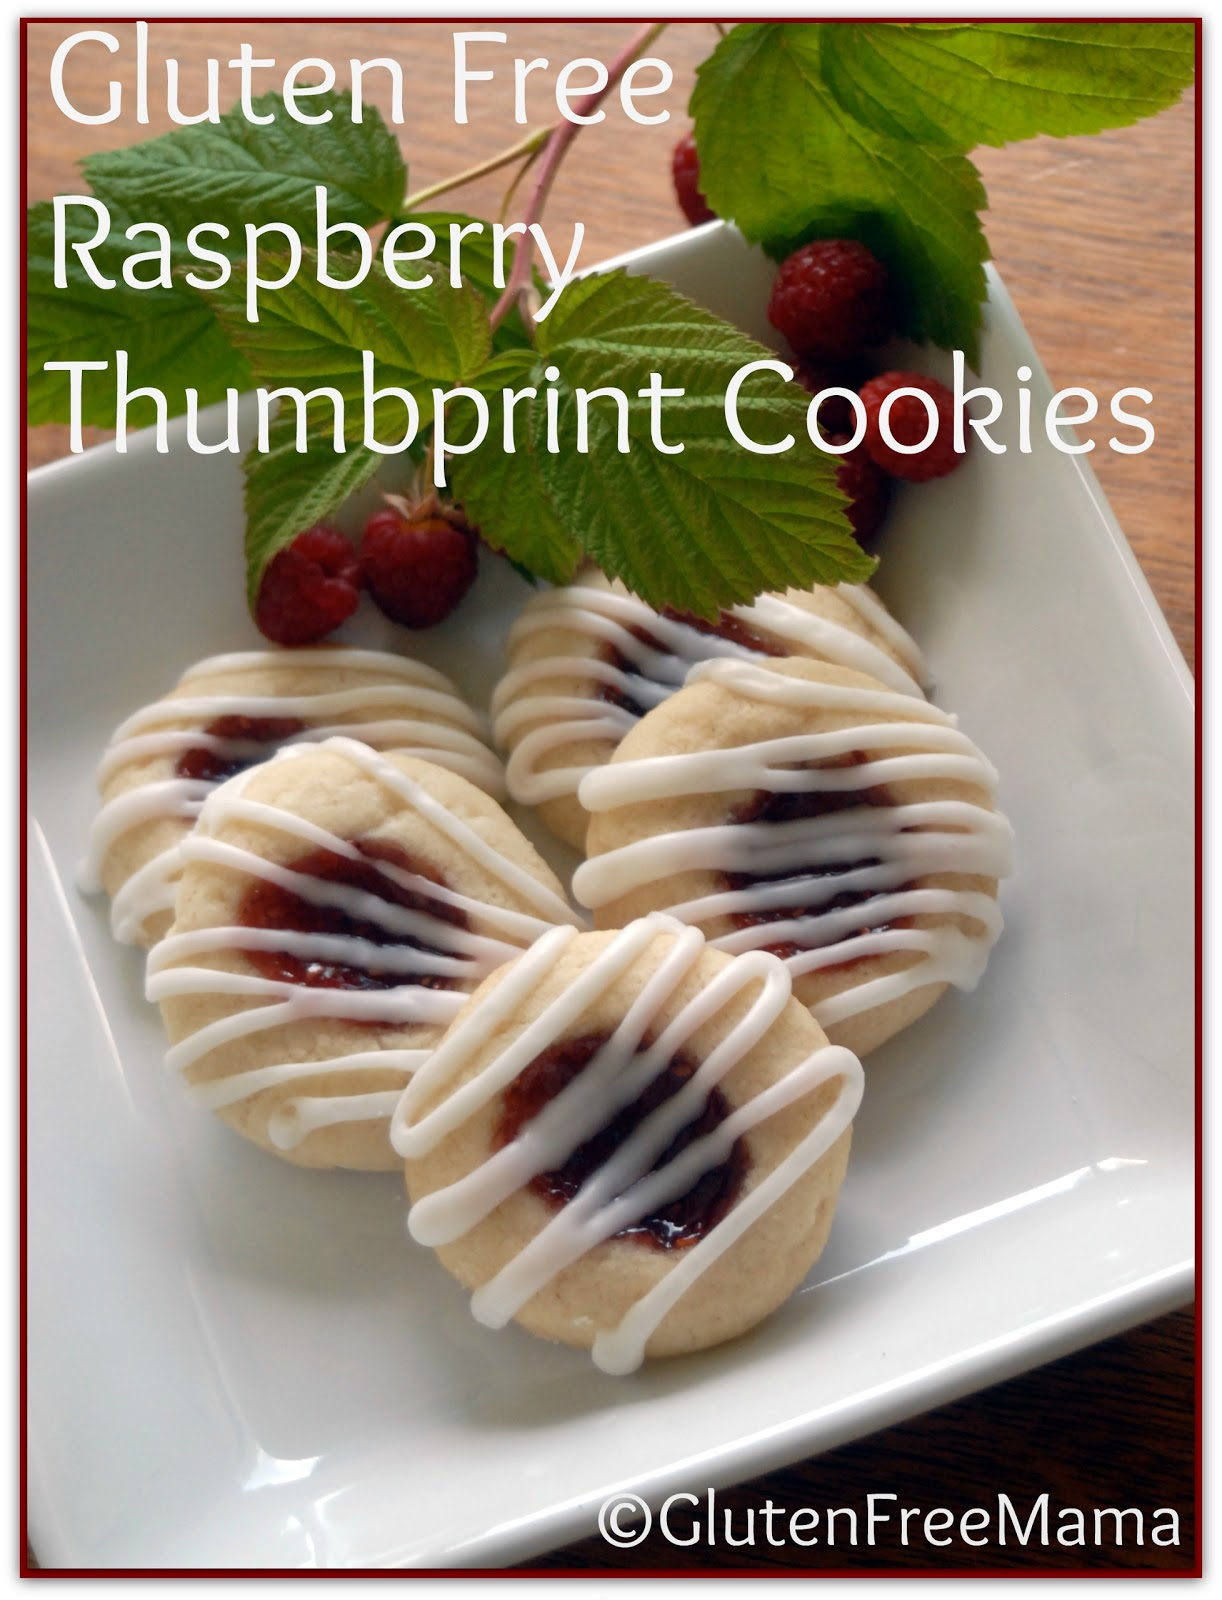 Gluten Free Raspberry Thumbprint Cookies